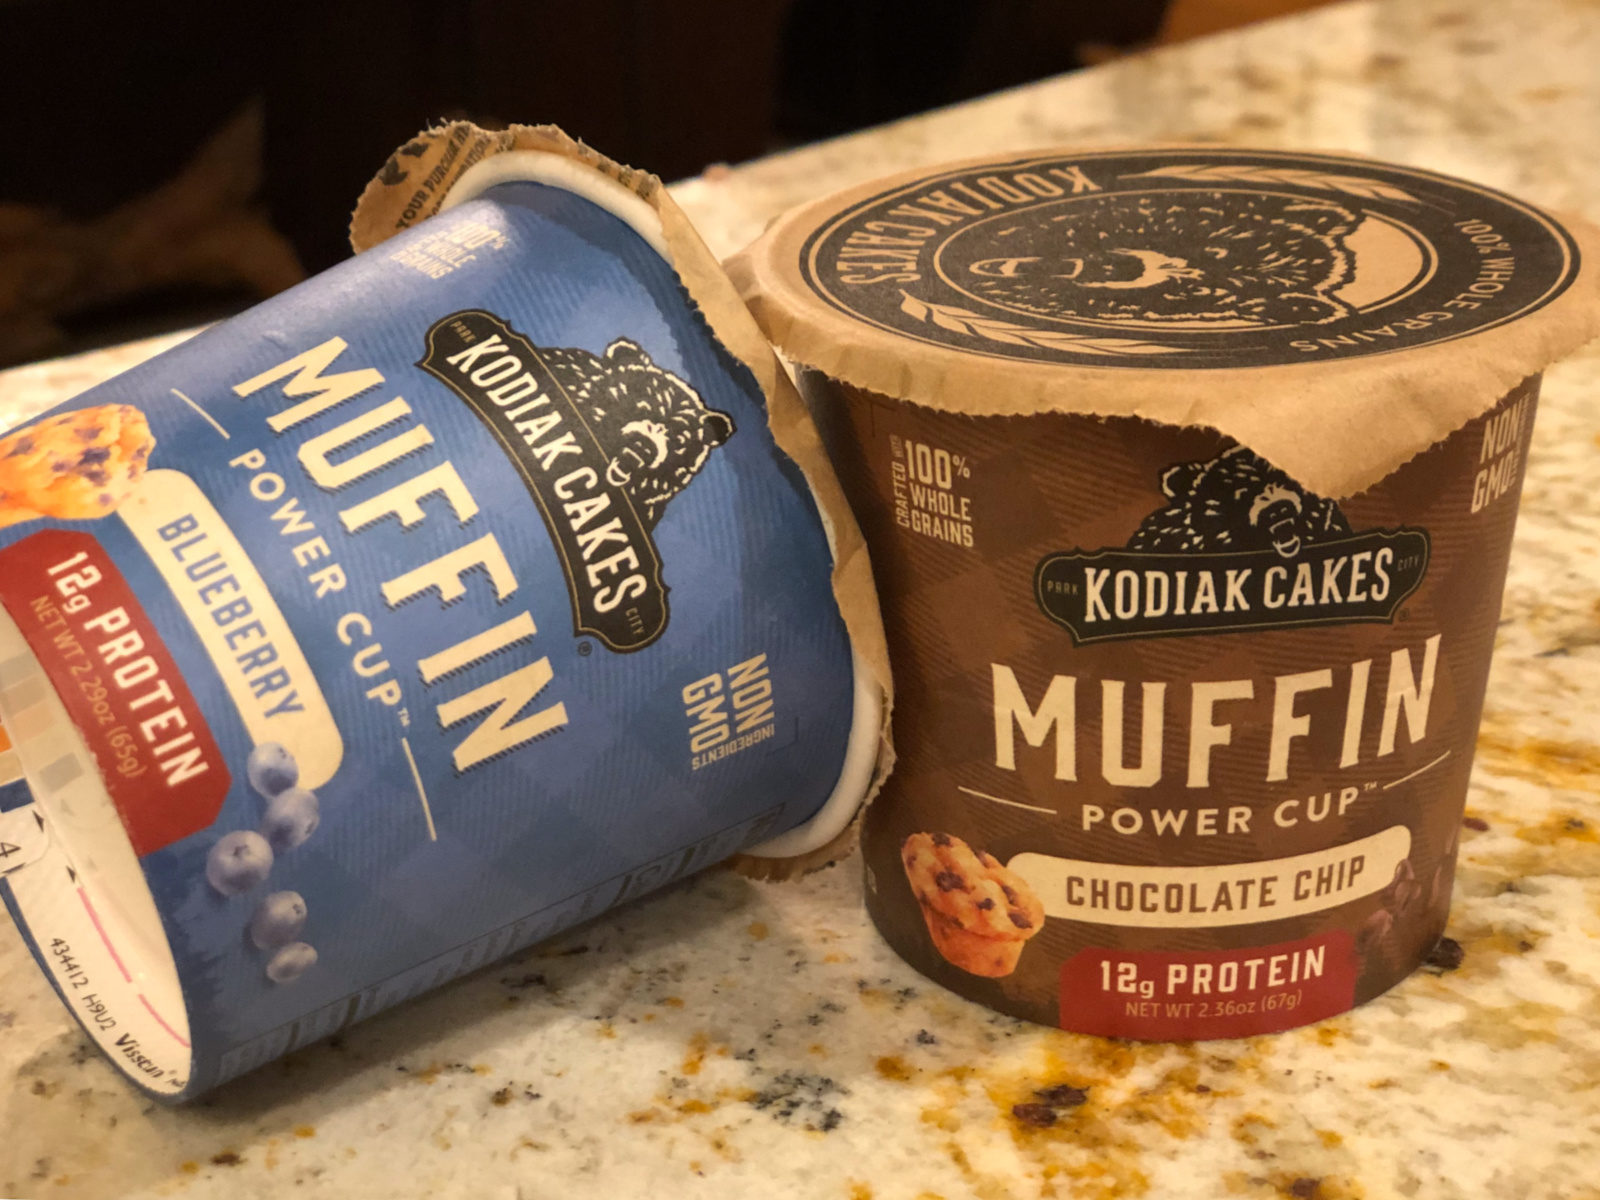 Kodiak Cakes Muffin Cups Just 40¢ At Publix on I Heart Publix